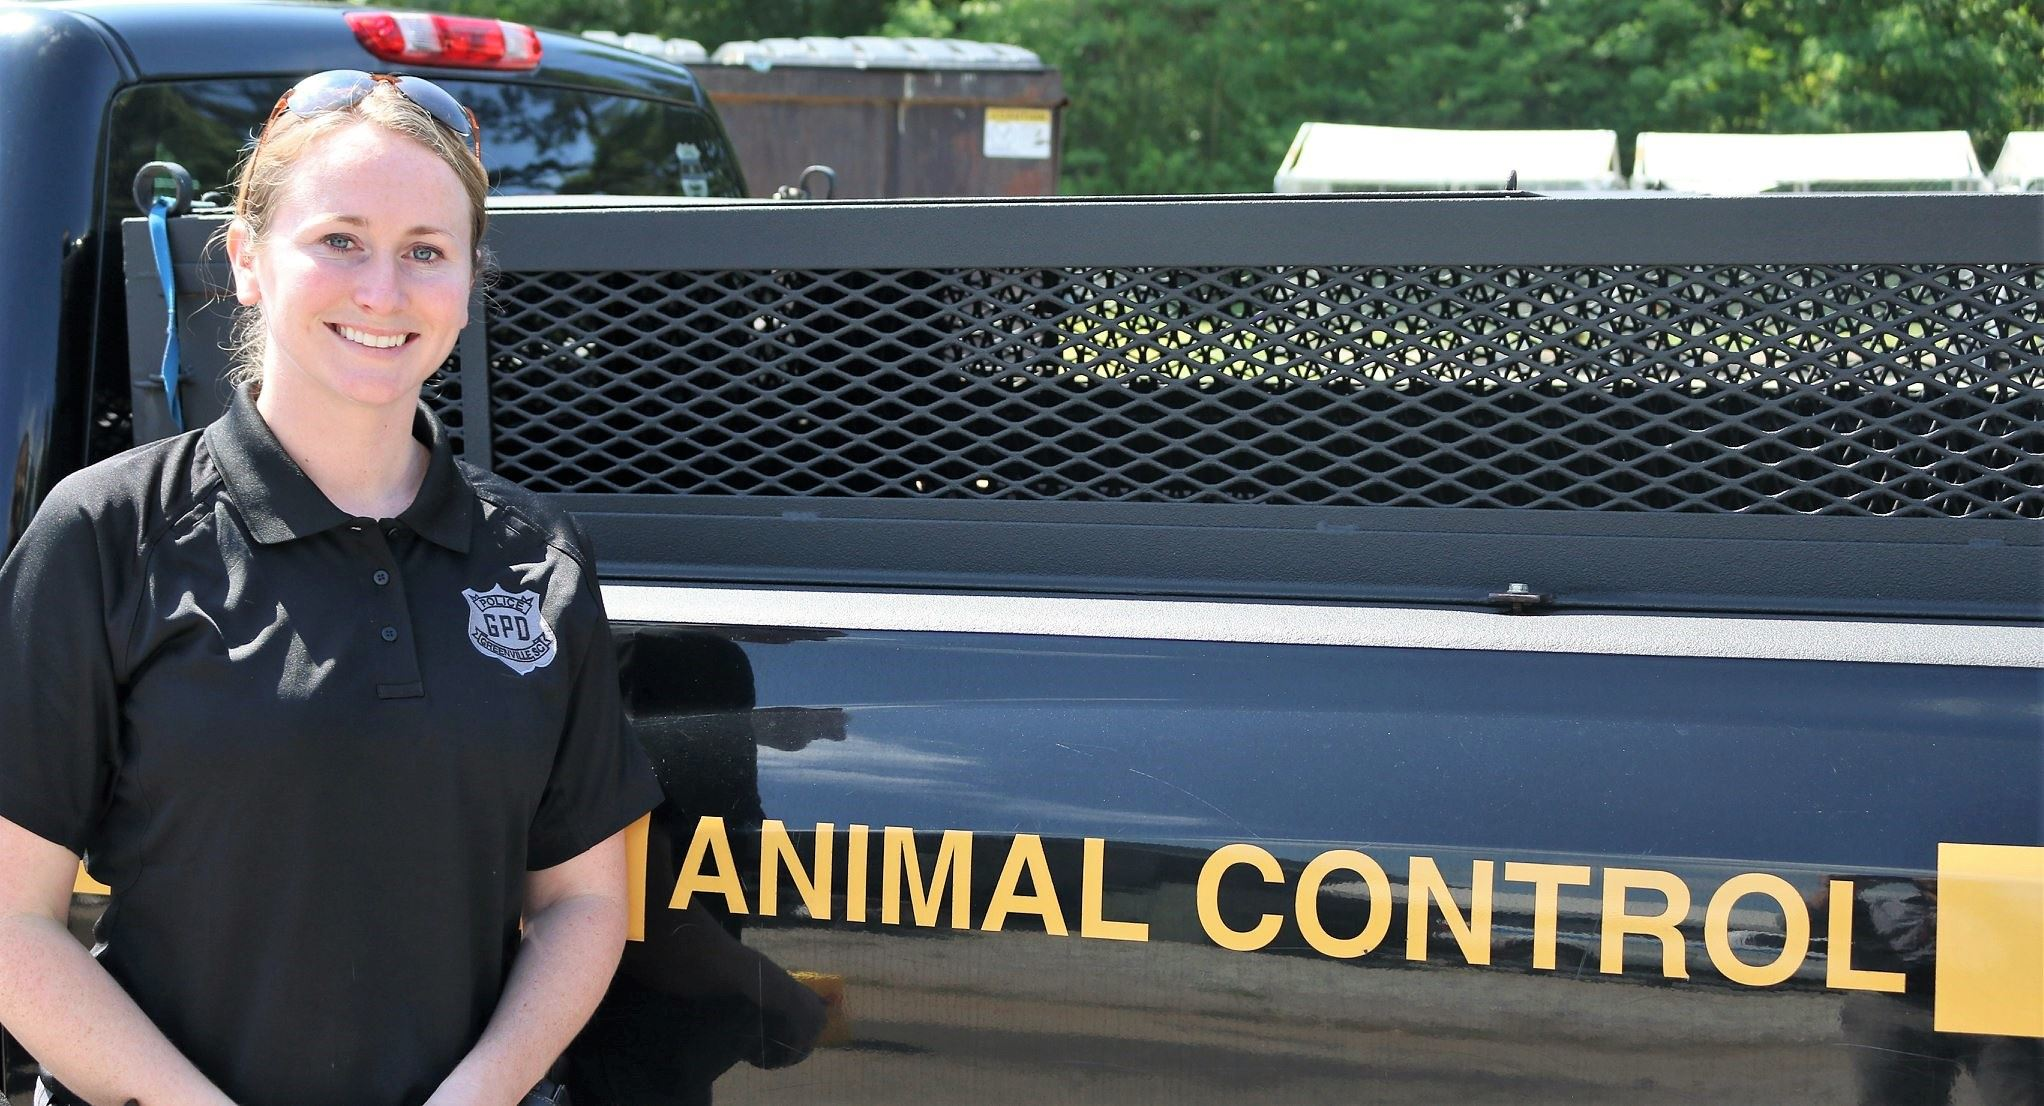 GPD Animal Control Officer Harrelson